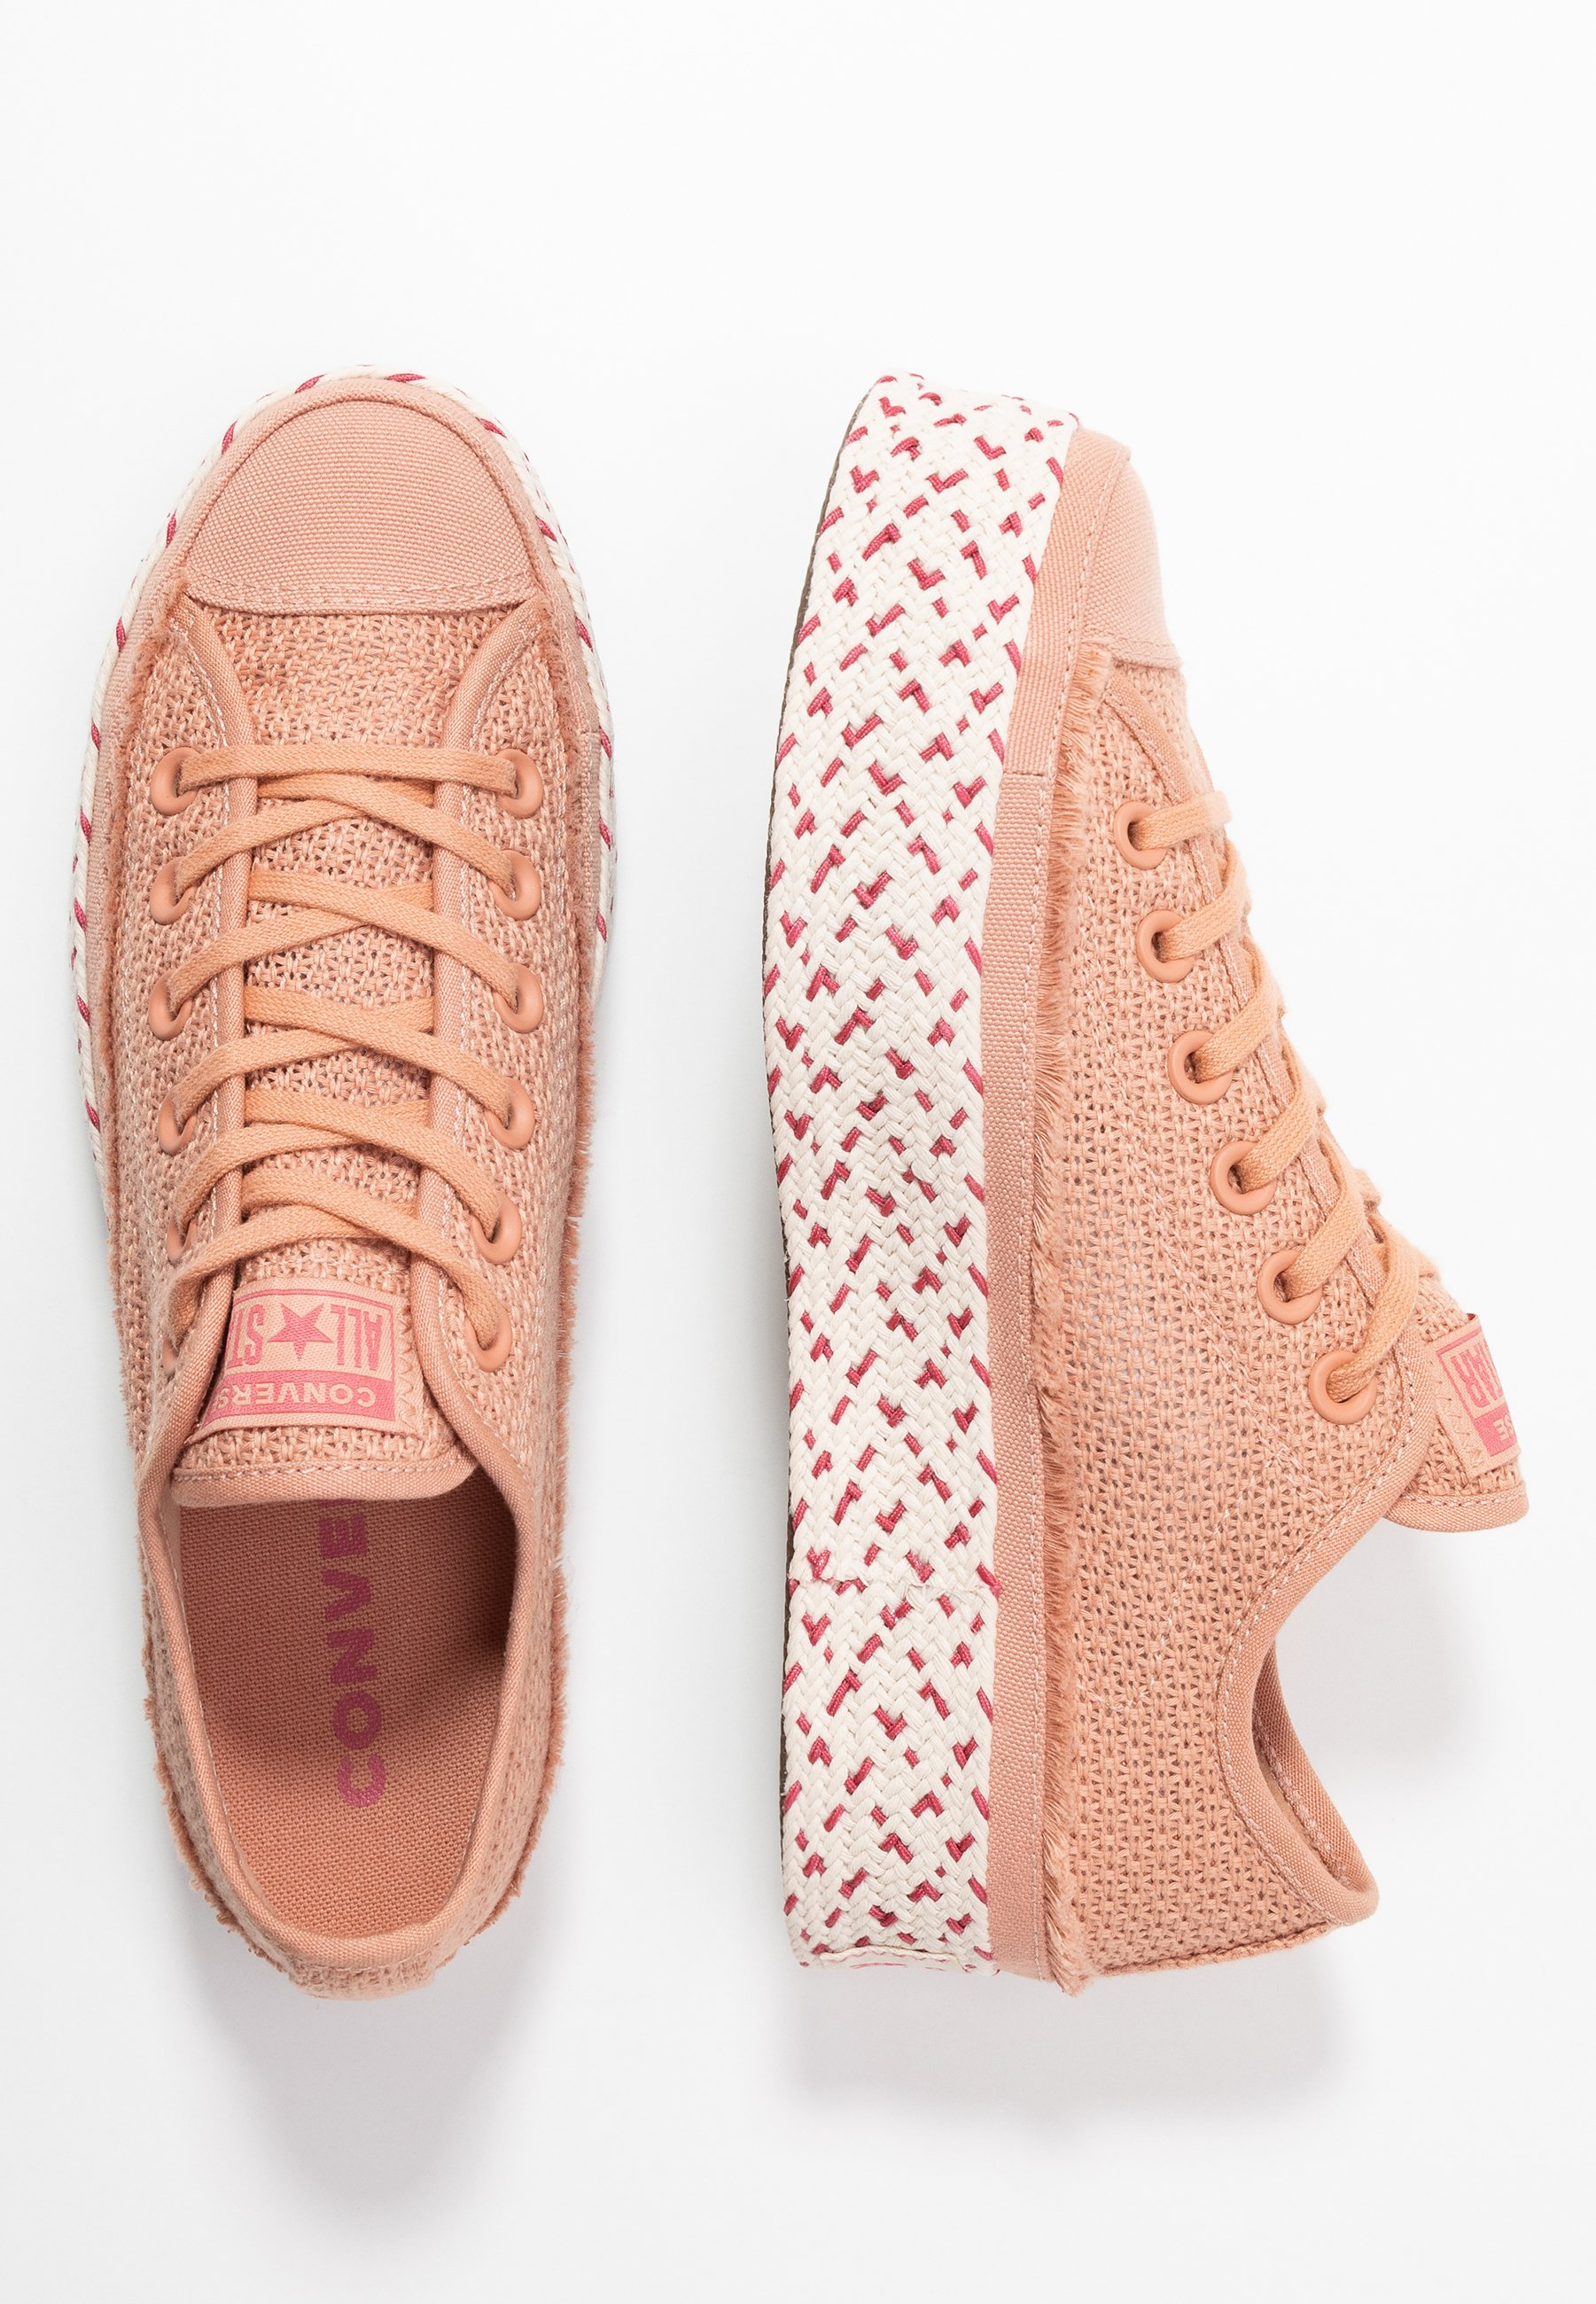 CHUCK TAYLOR ALL STAR Sneakers rose goldwhitemadder pink